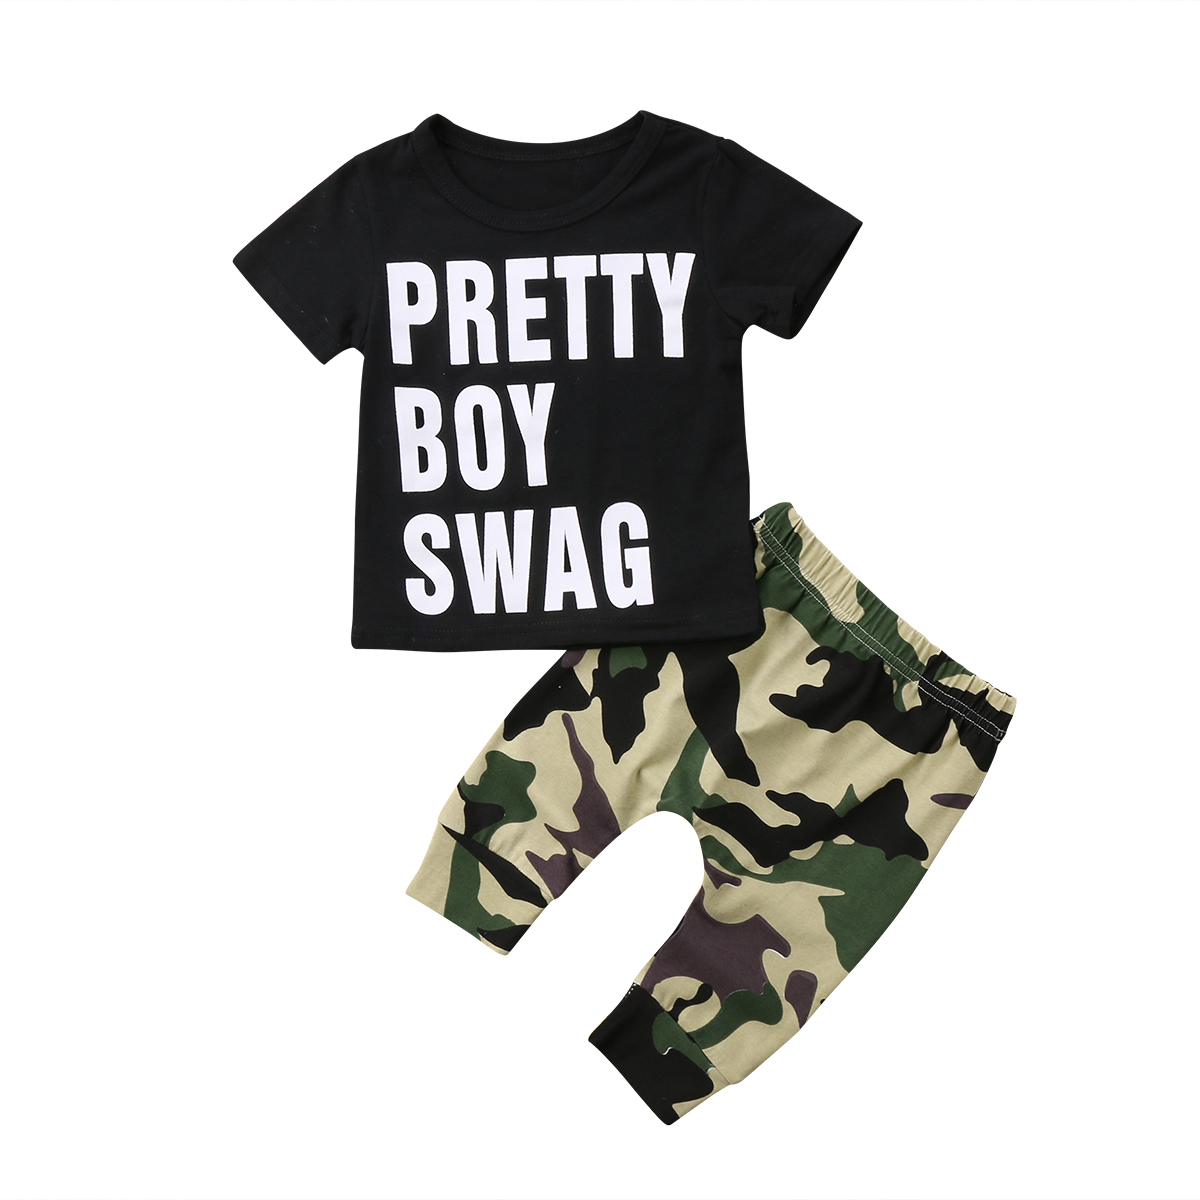 Toddler Infant Boy Clothes Letter T-shirt Tops+Camouflage Shorts 2PCS Outfit Set